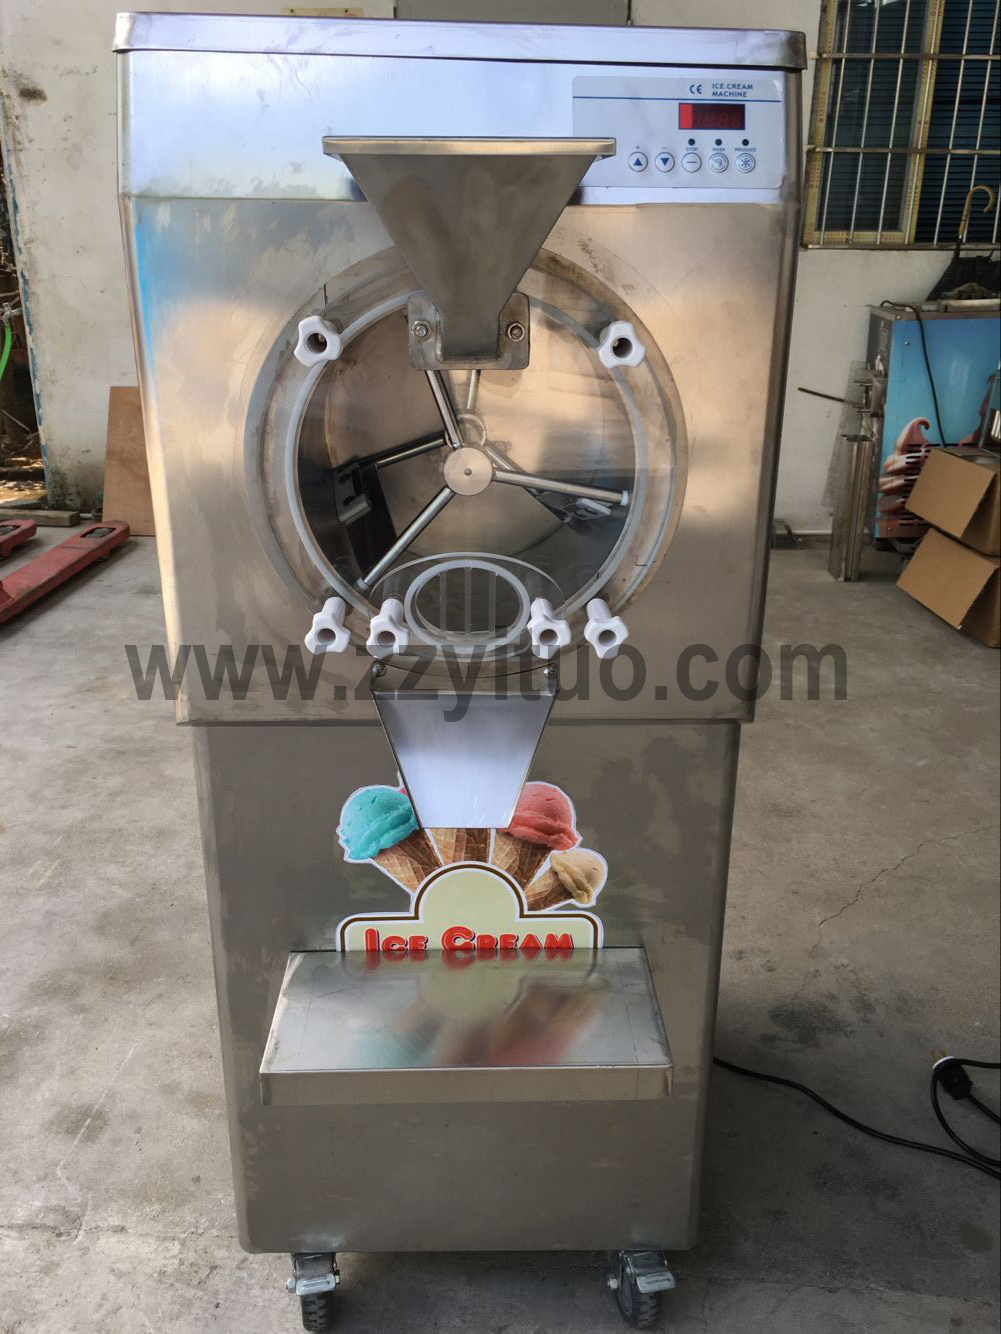 Hot sale 28-35L/H commercial use stainless steel gelato hard ice cream maker